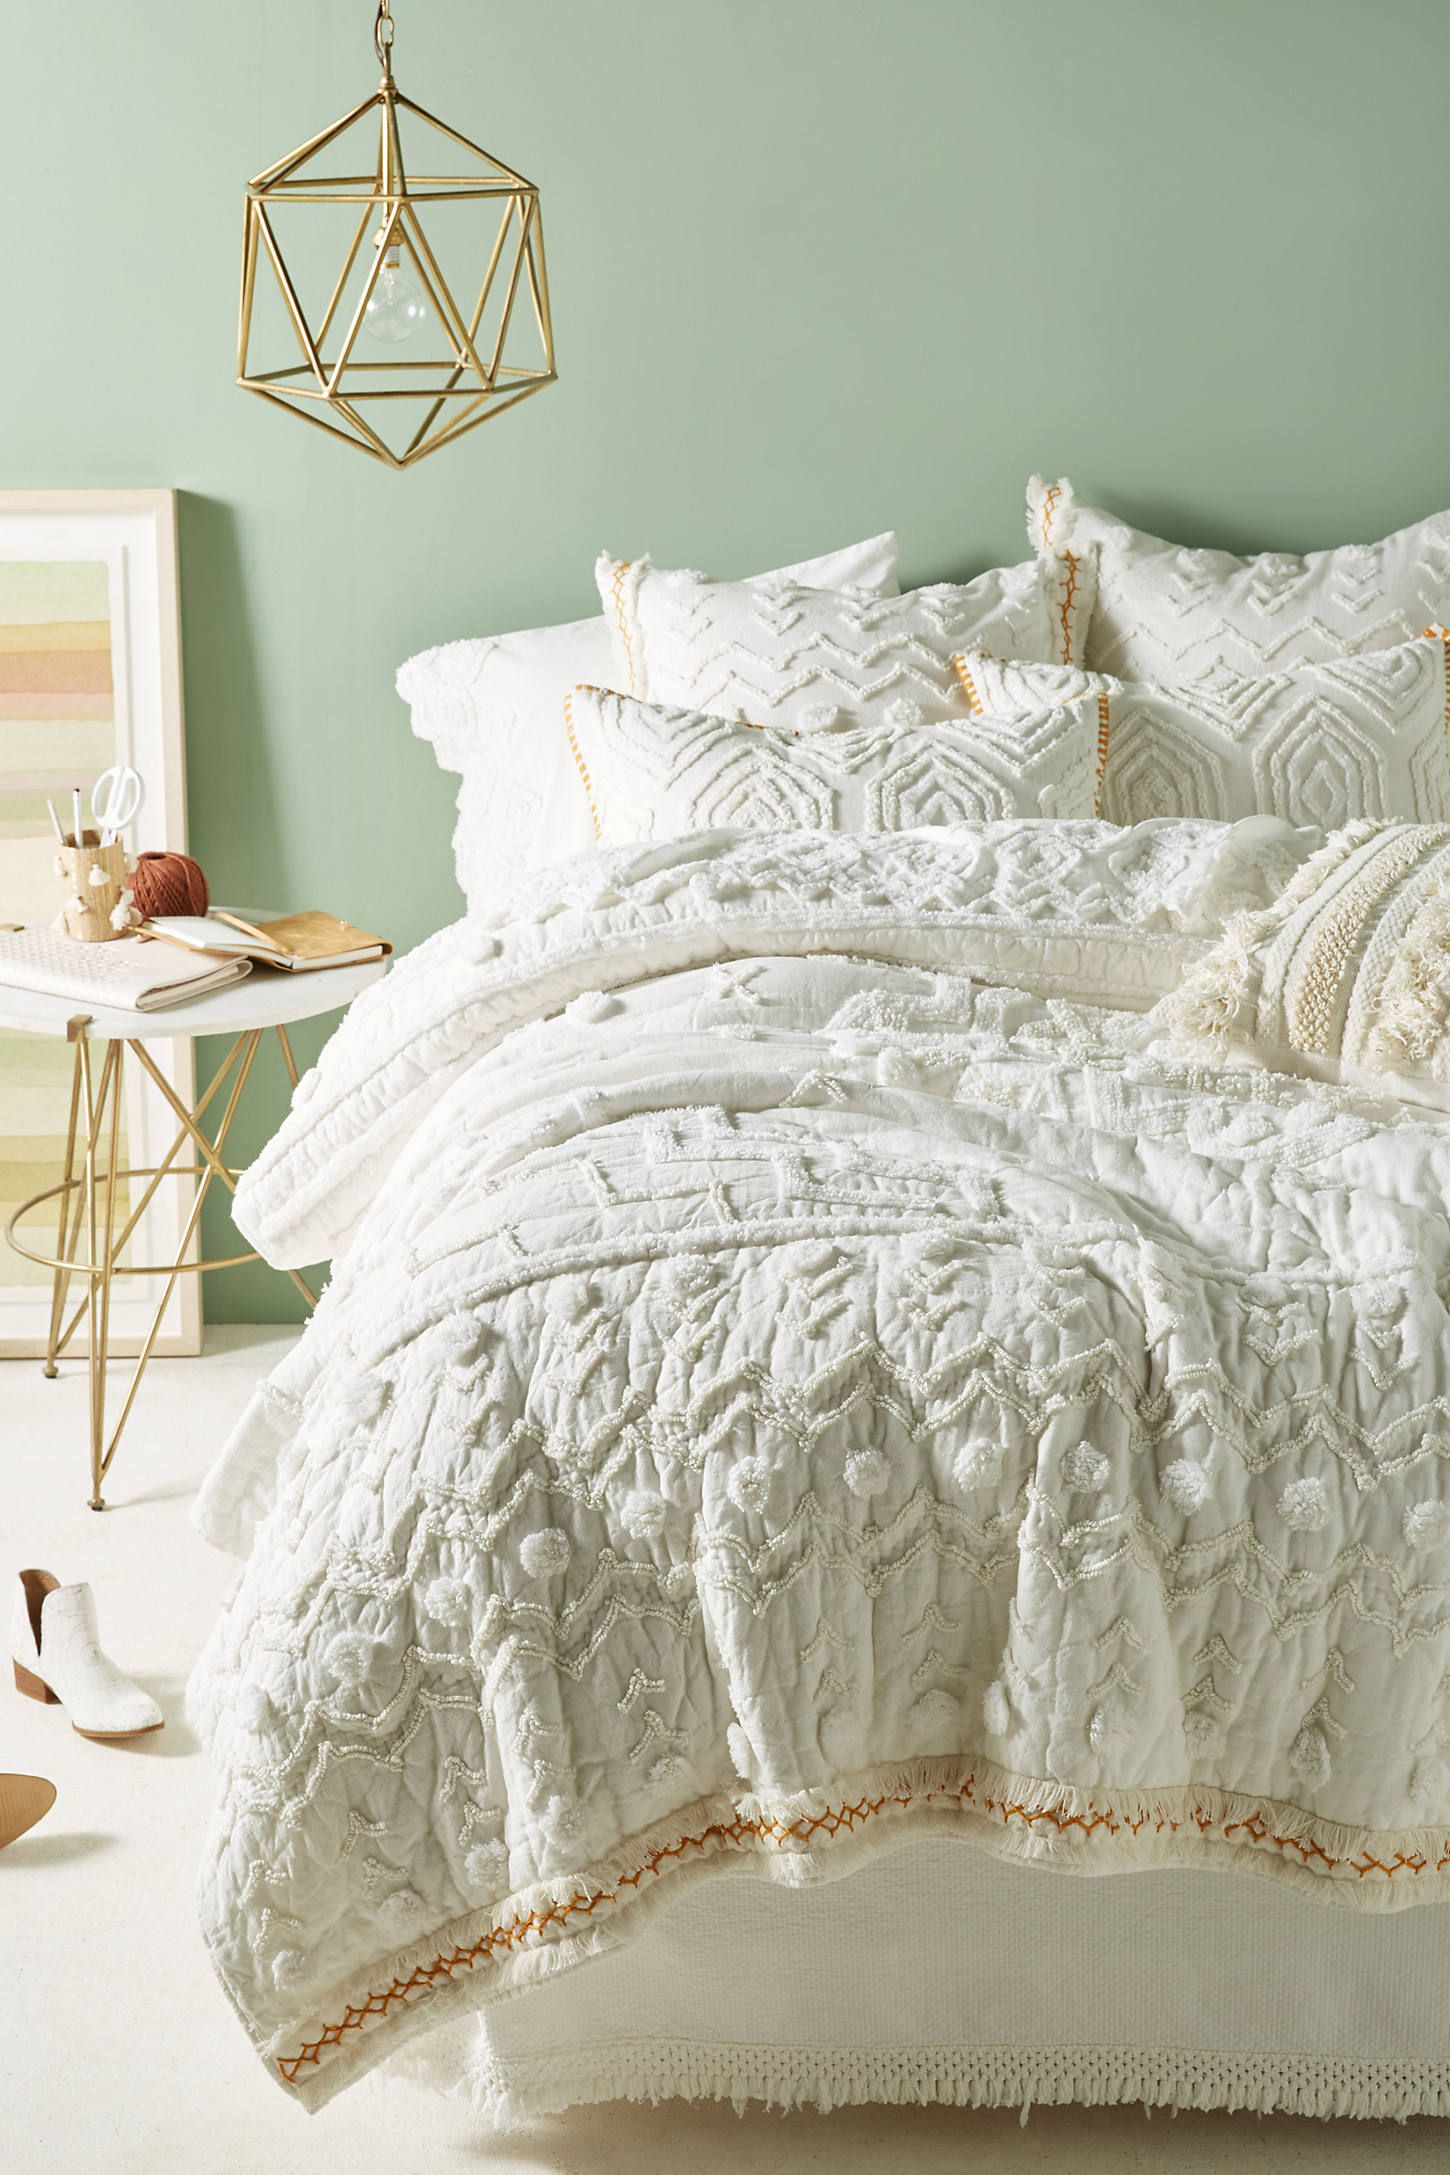 Tufted Cidra Quilt In 2020 Apartment Bedroom Decor Bedding